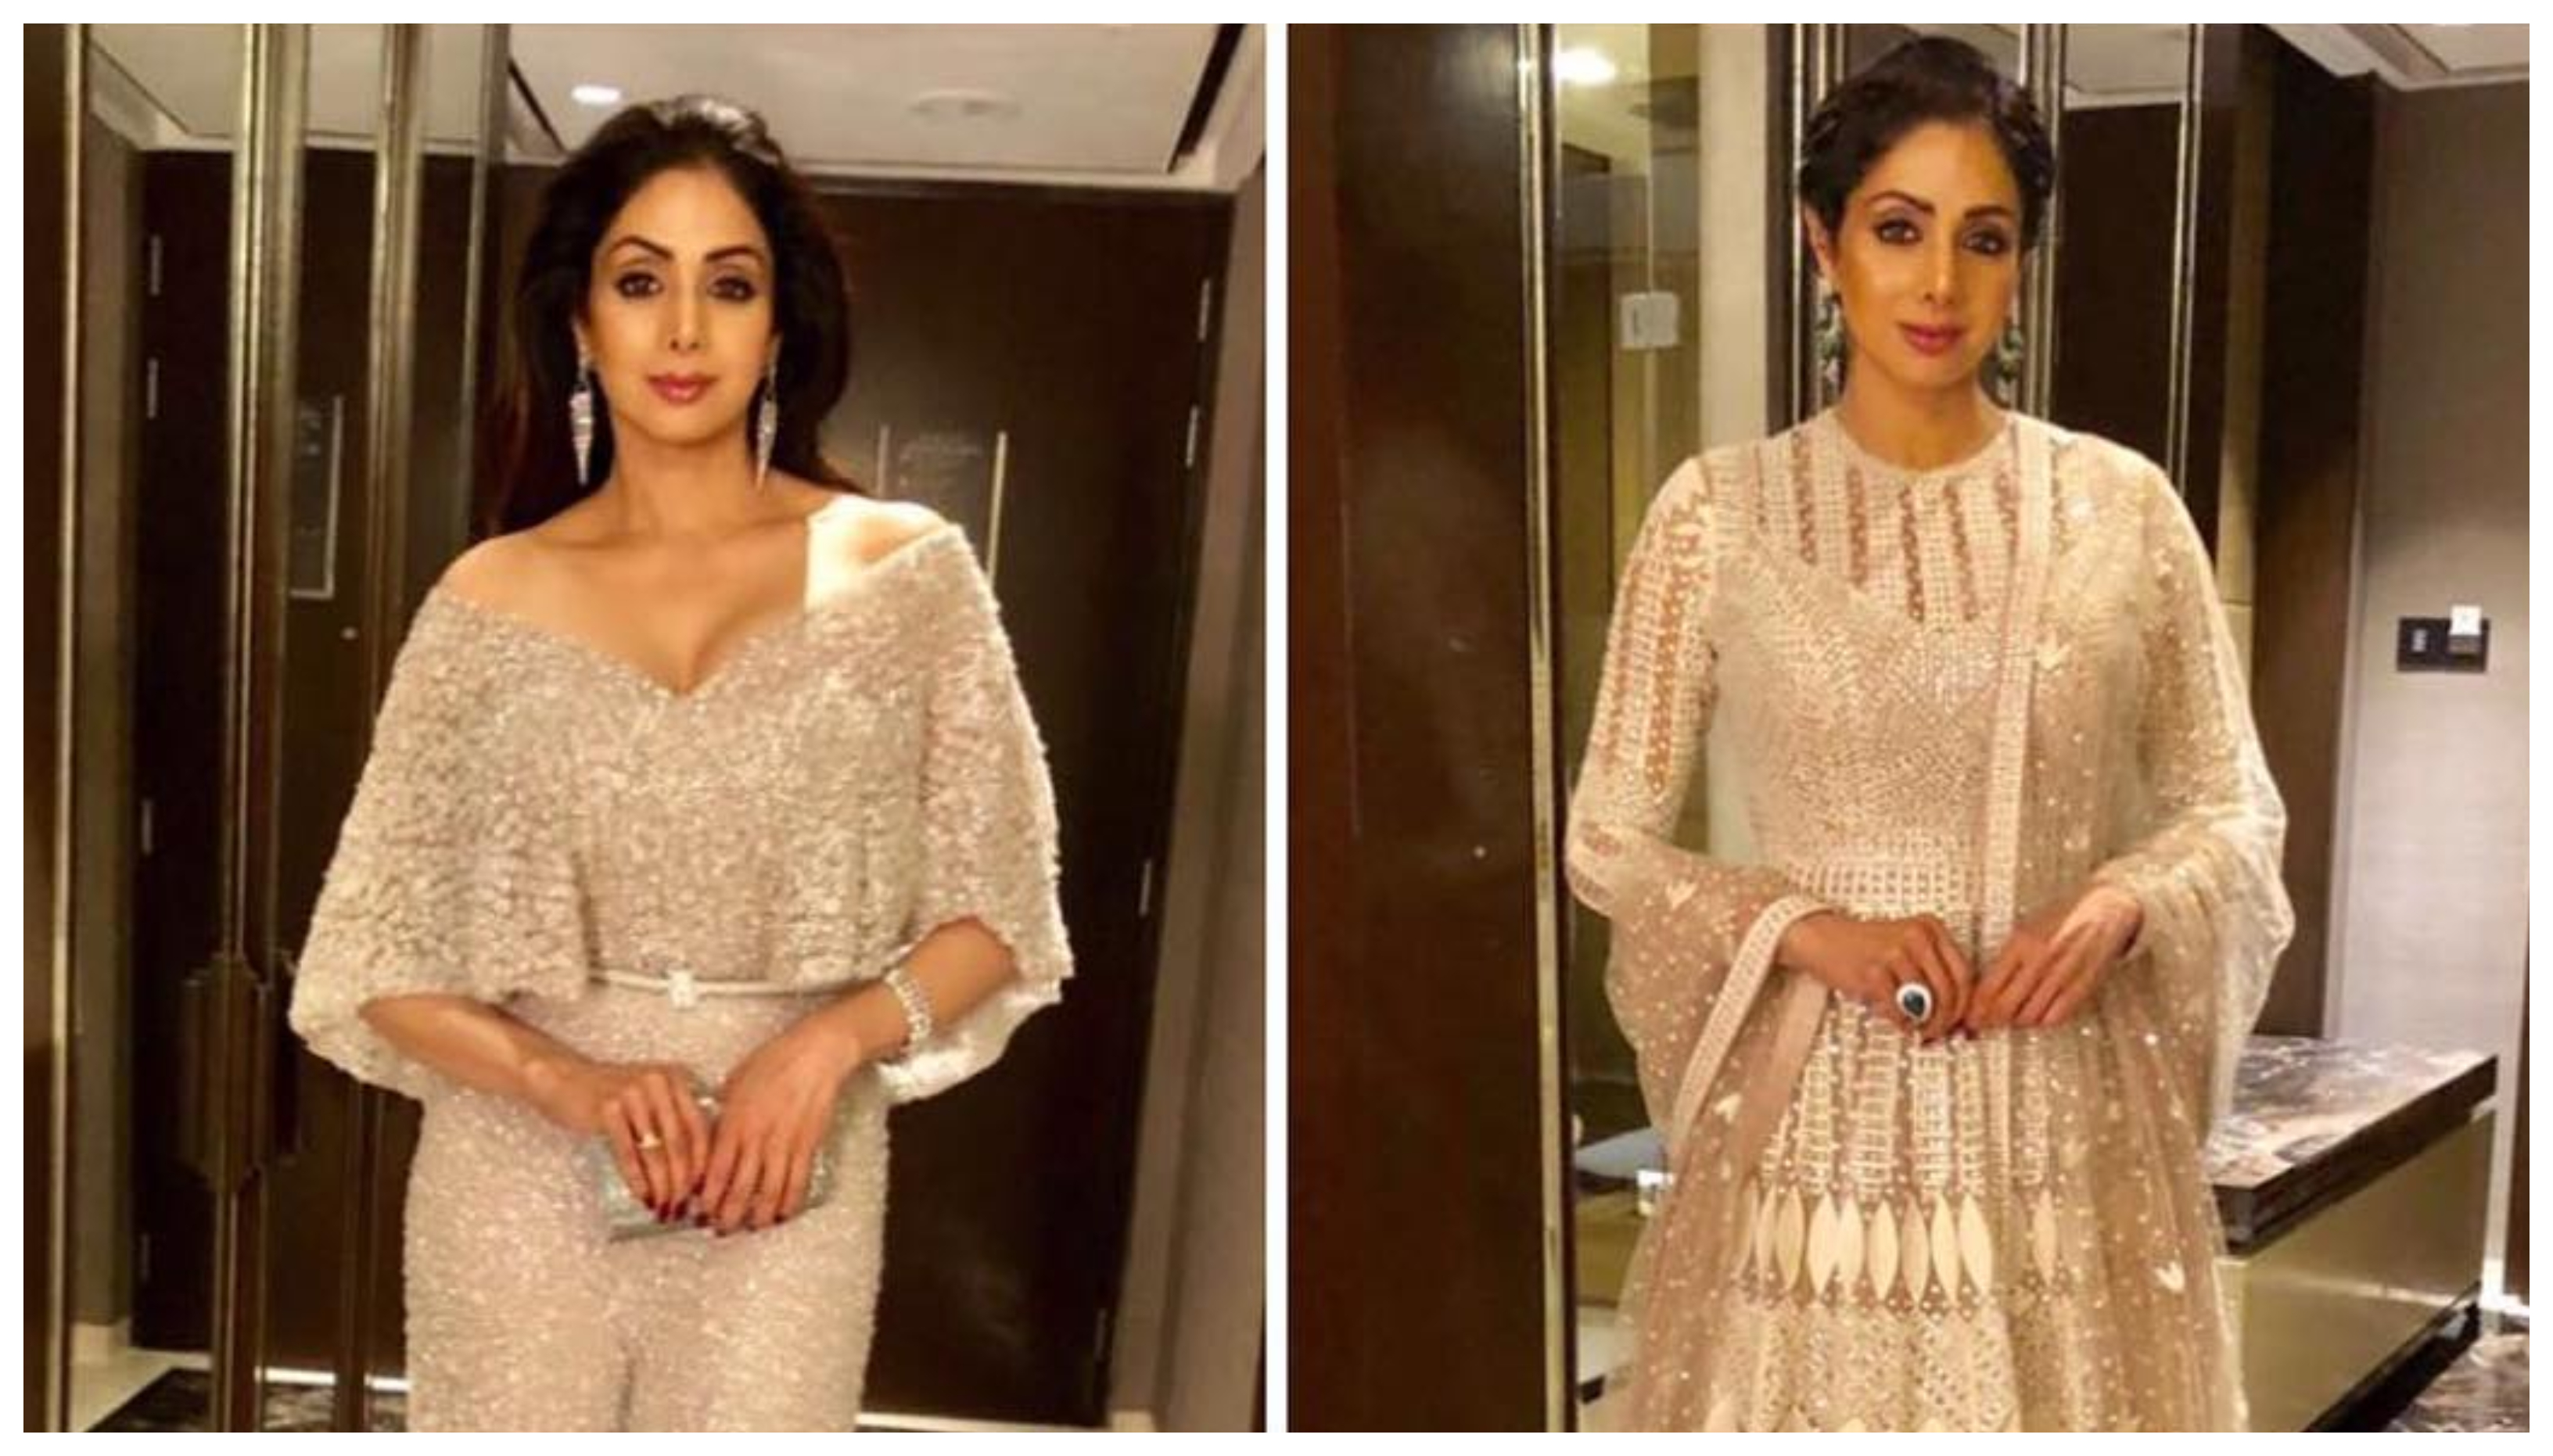 5 reasons why Sridevi's death is still considered suspicious: